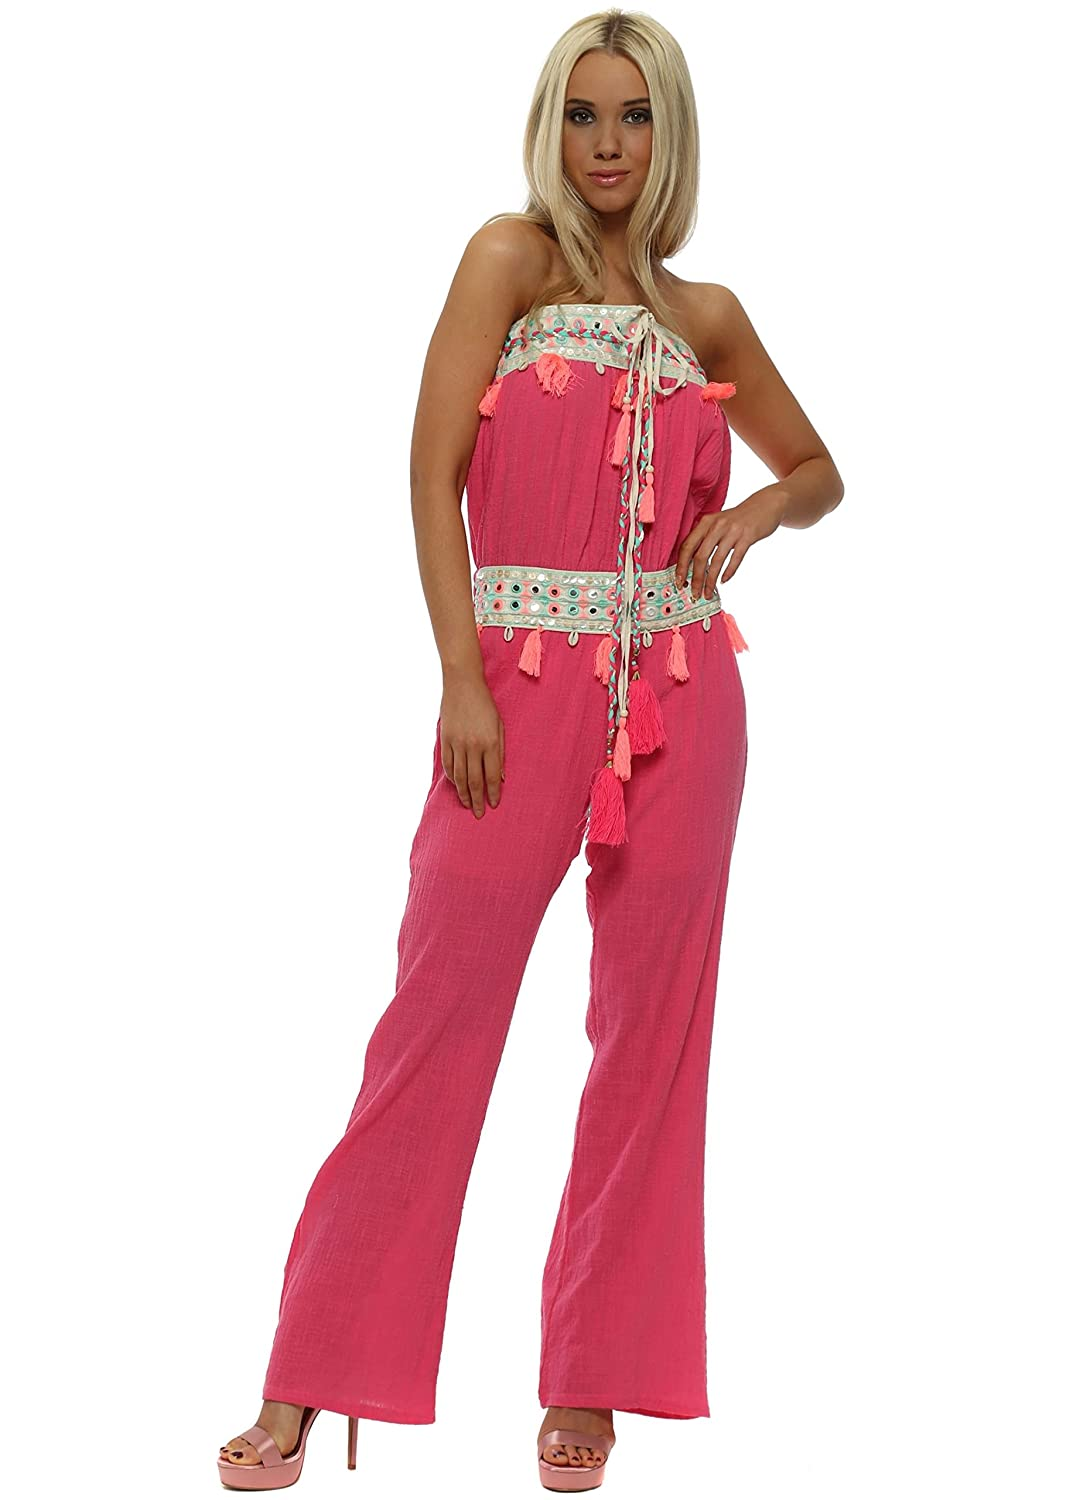 58d0df85a82 Laurie   Joe Hot Pink Boho Tassle Bandeau Jumpsuit  Amazon.co.uk  Clothing